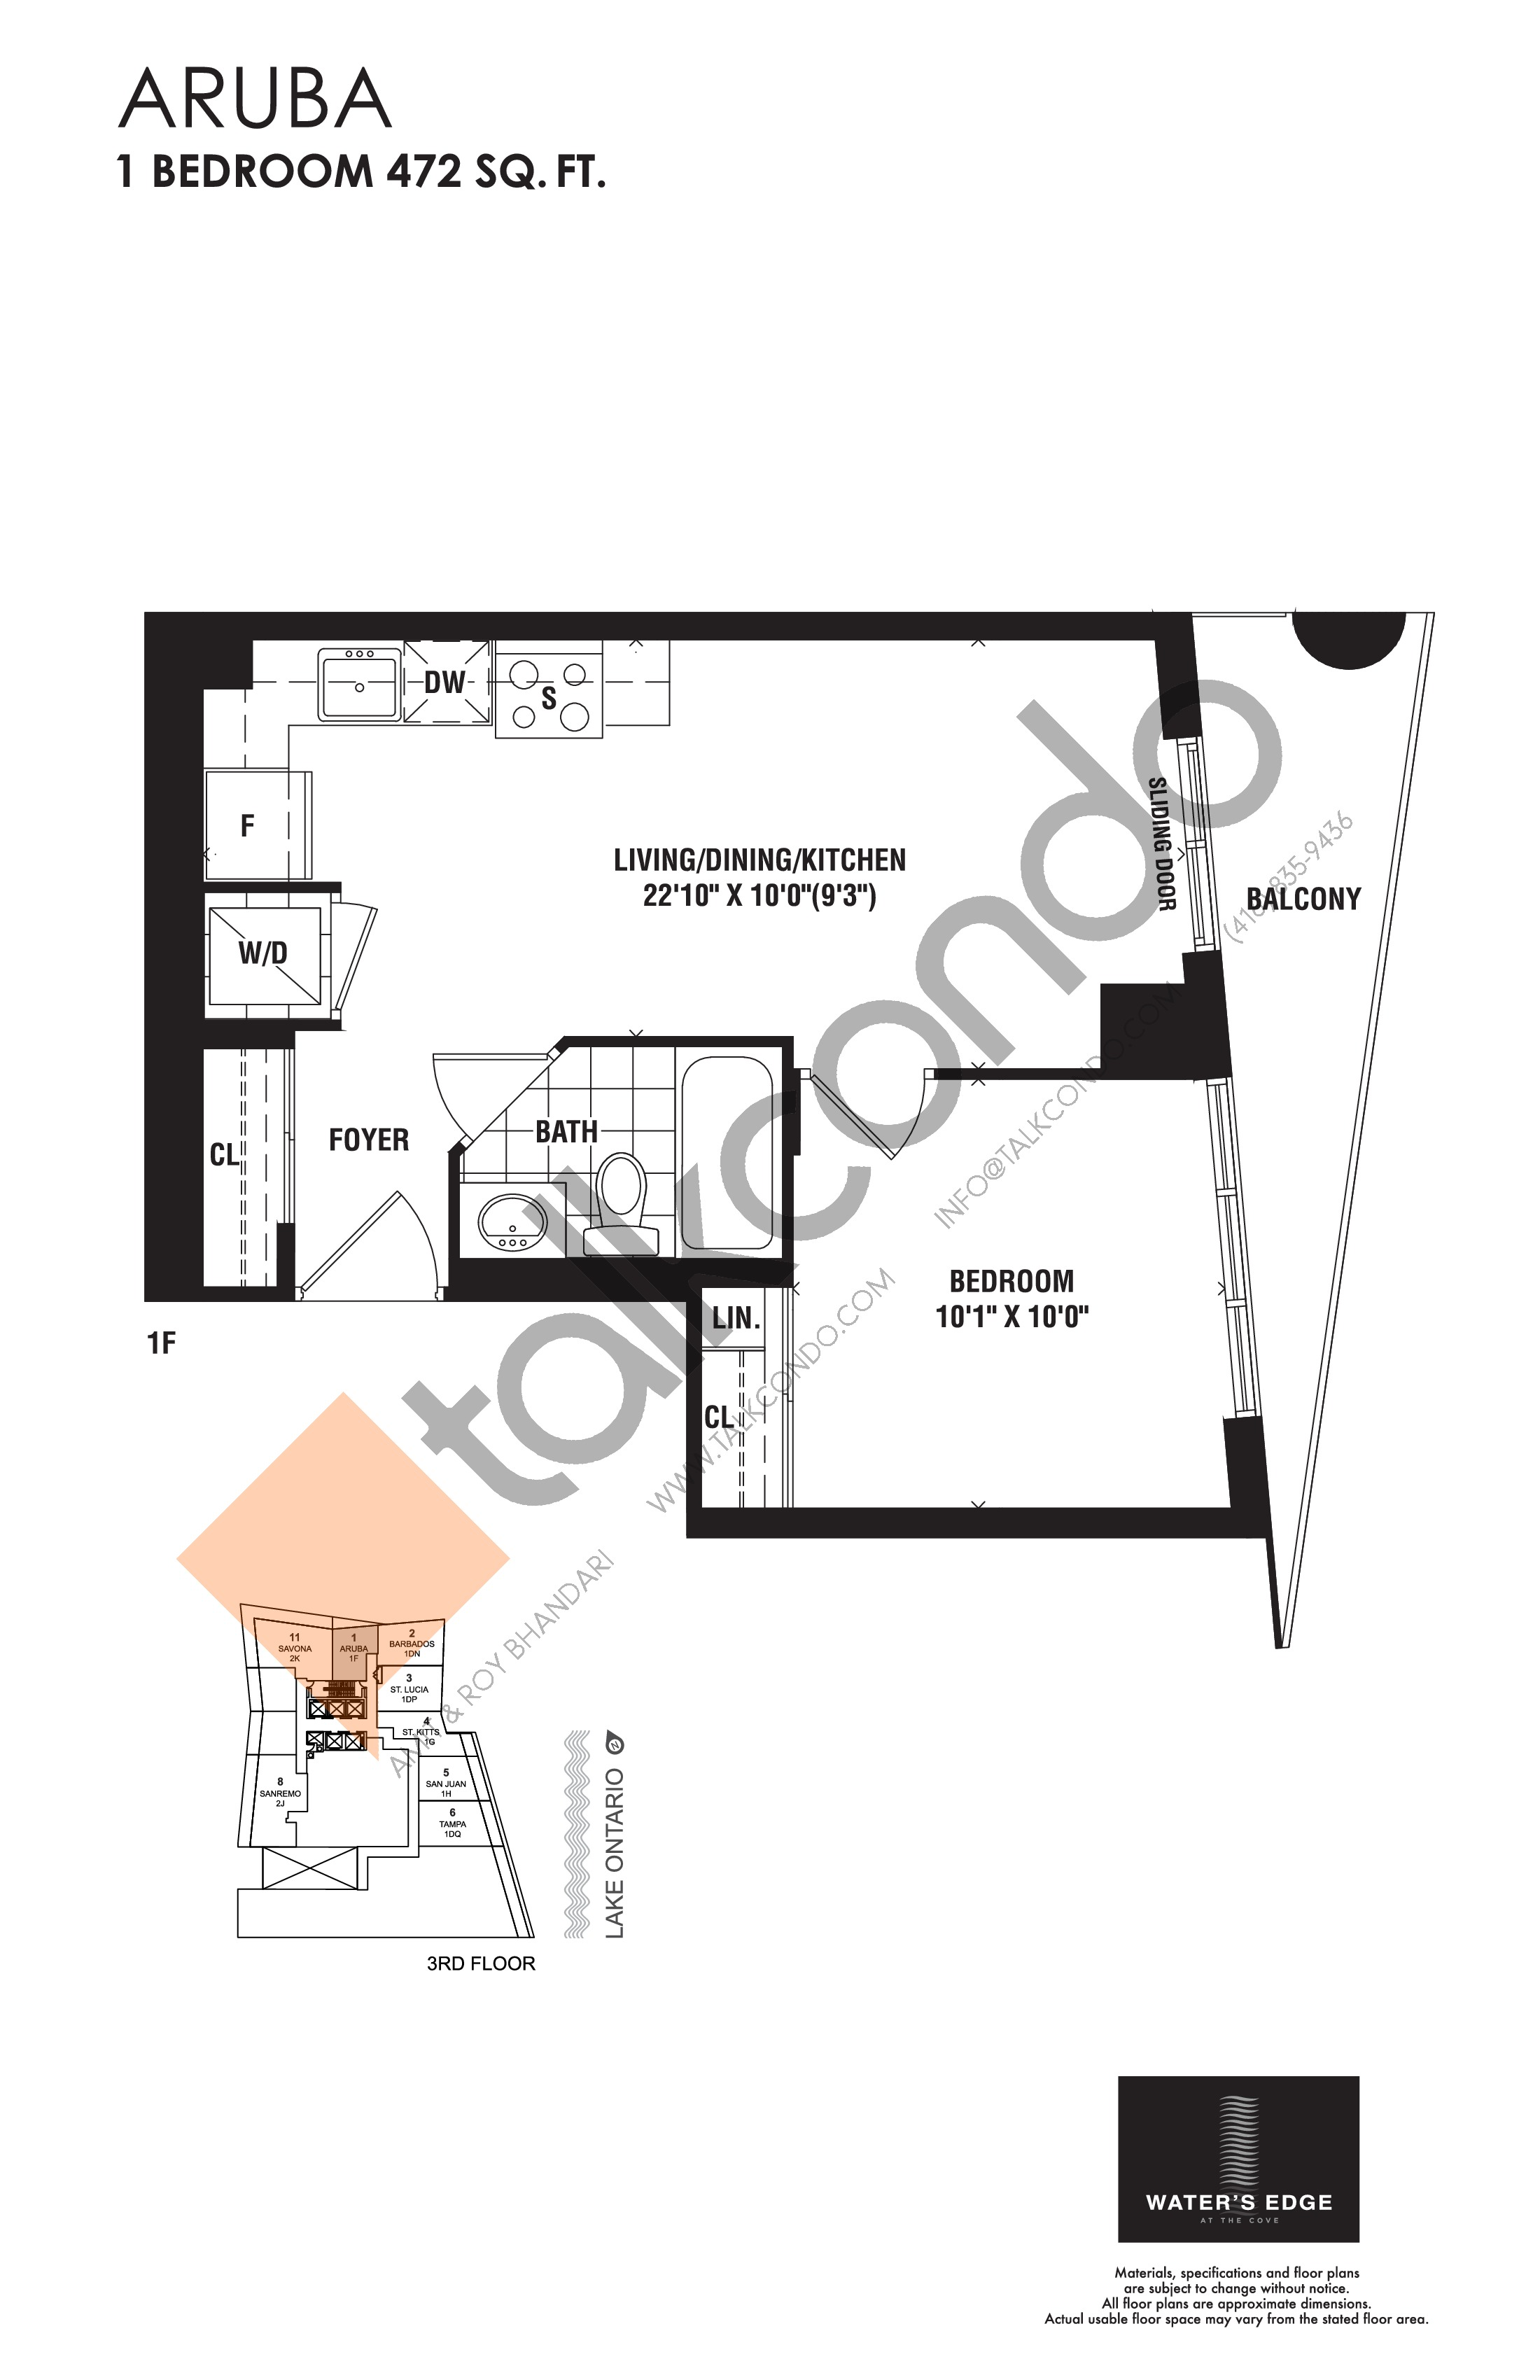 Aruba Floor Plan at Water's Edge at the Cove Condos - 472 sq.ft